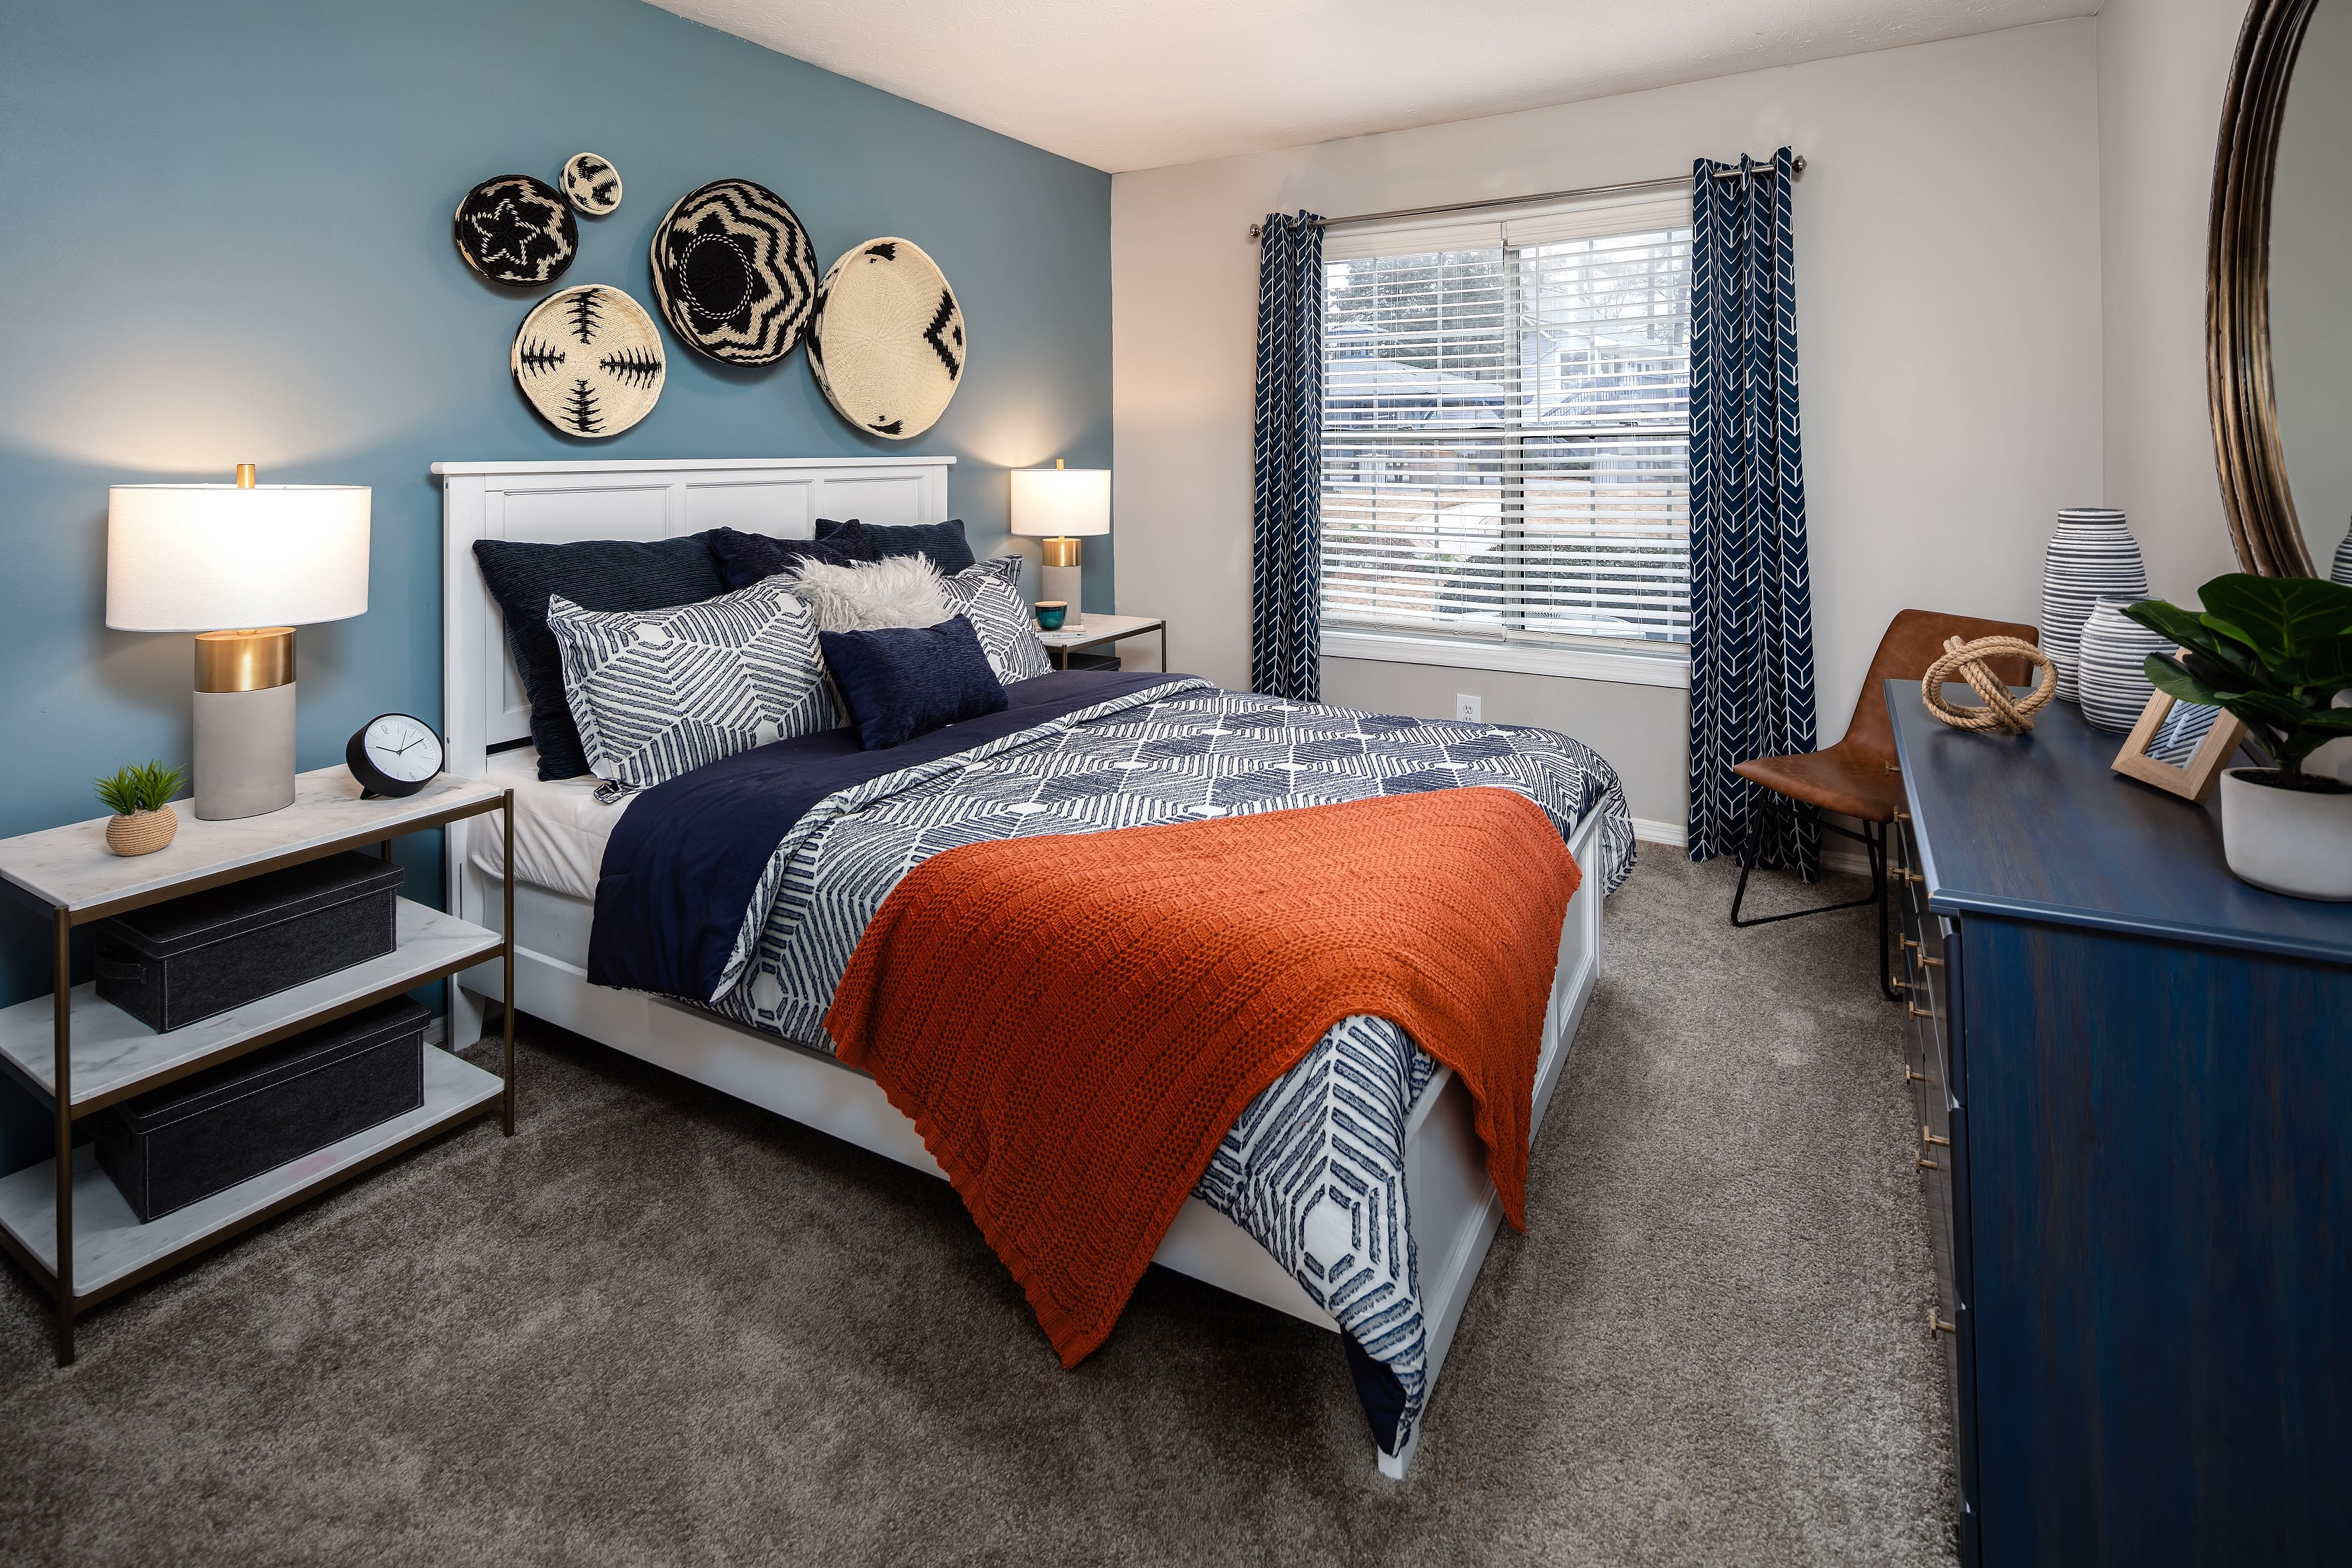 Renovated bedrooms at The Bentley at Marietta in Marietta, GA